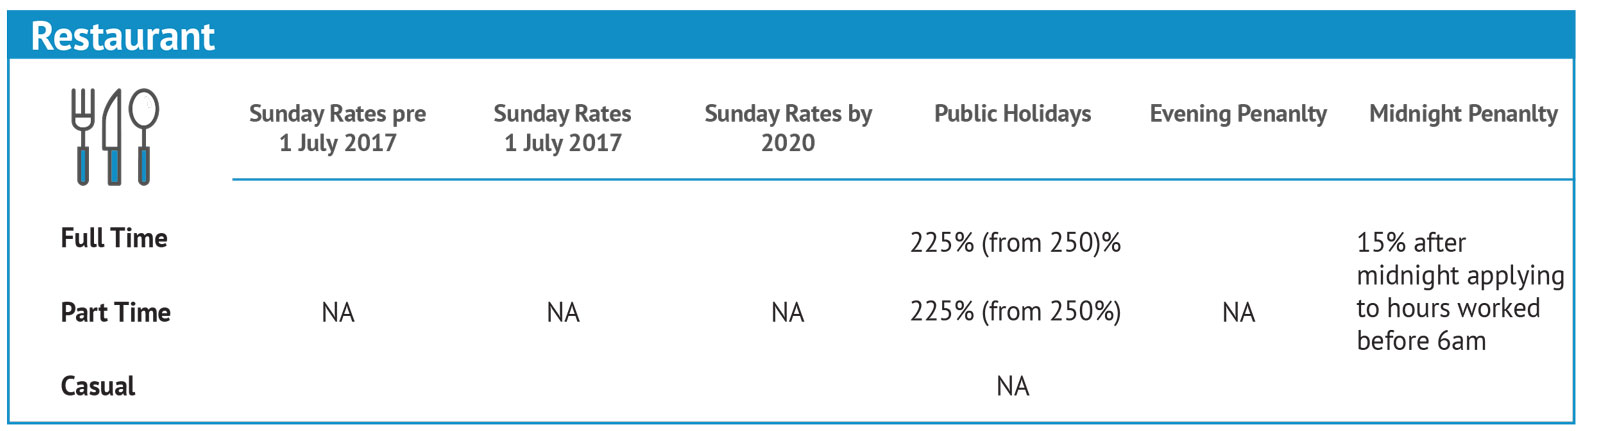 Penalty-Rates-Changes_Individual-3